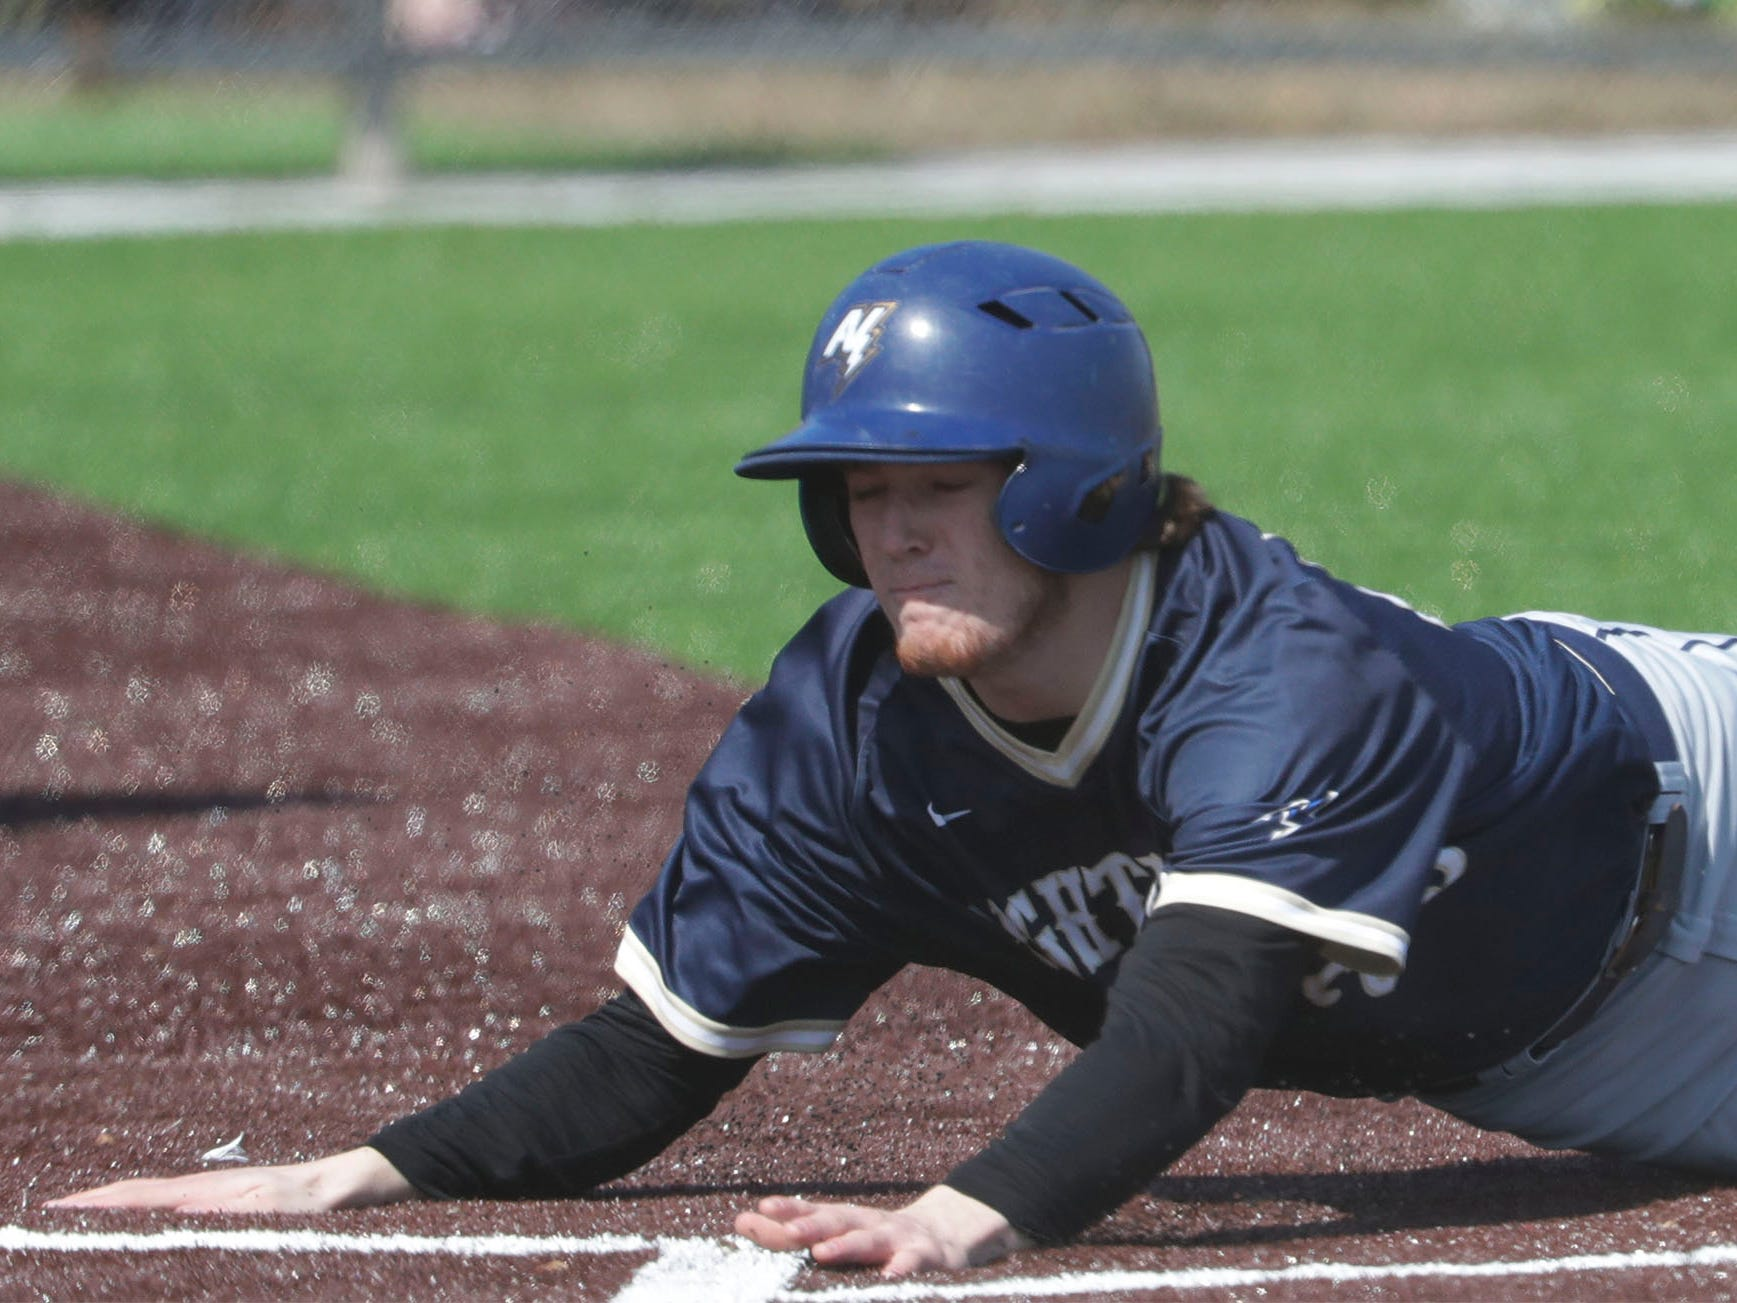 Appleton North's Aaron Reiland (25) slides into home, Friday, March 29, 2019, at the Field of Dreams complex in Sheboygan, Wis.